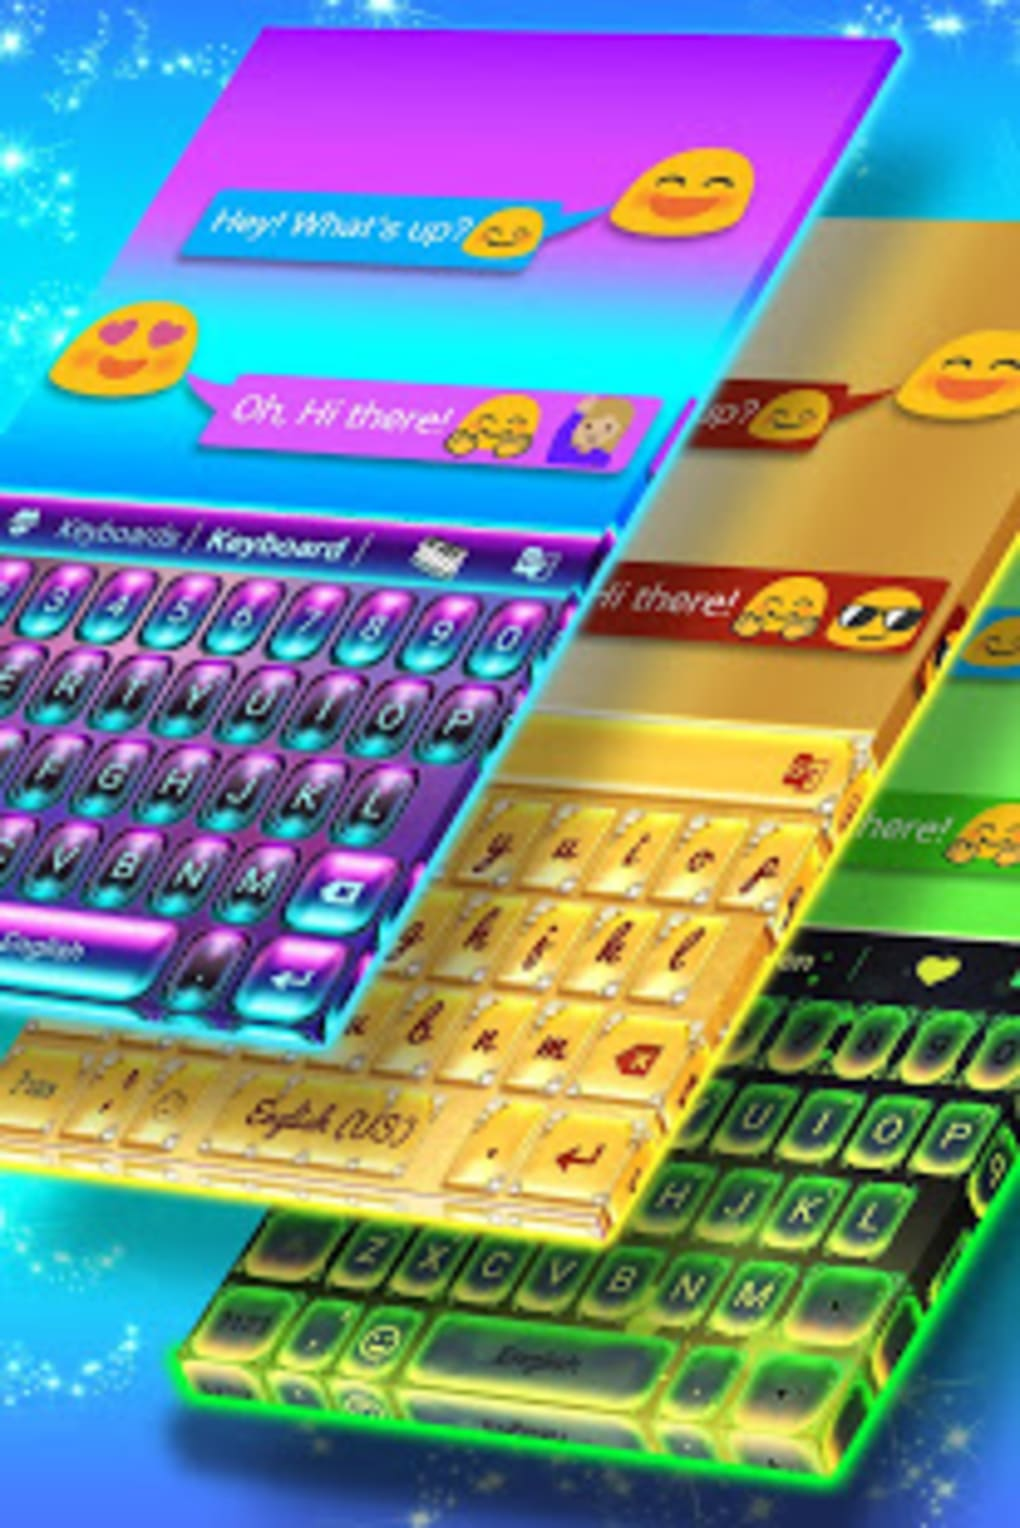 New 2019 Keyboard Apk For Android Download